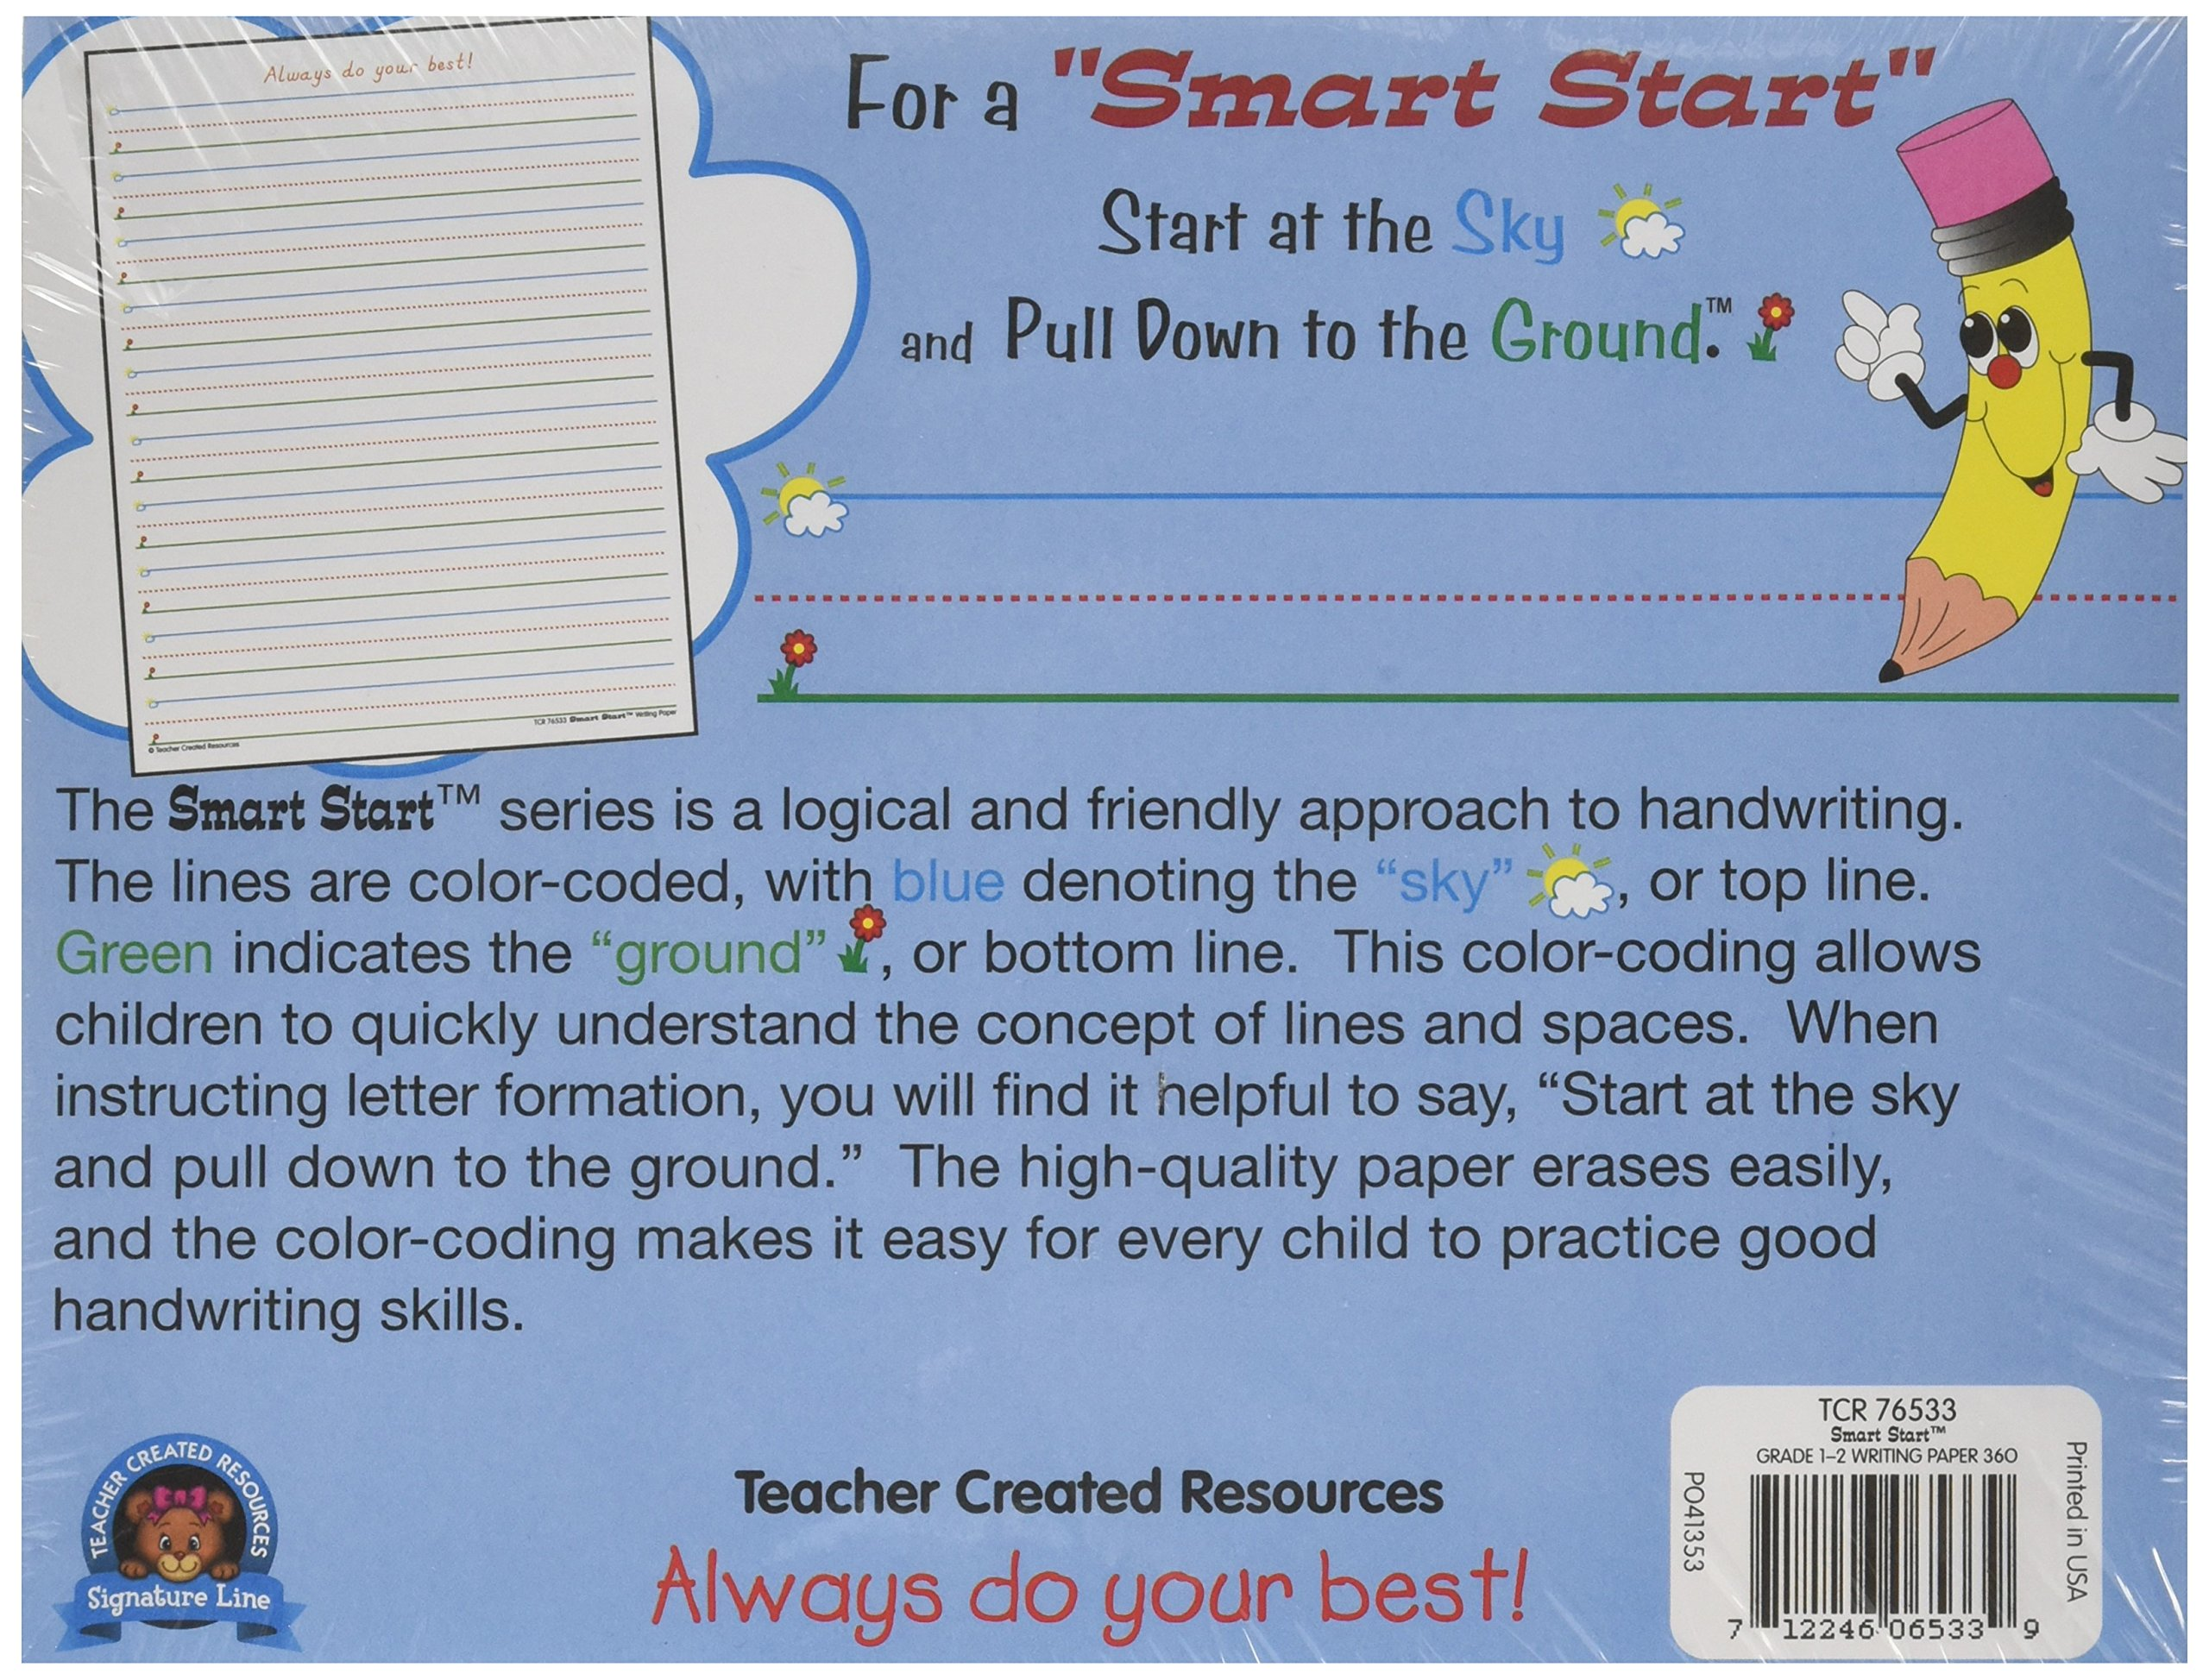 Amazon.com : Teacher Created Resources Smart Start 1-2 Writing Paper ...